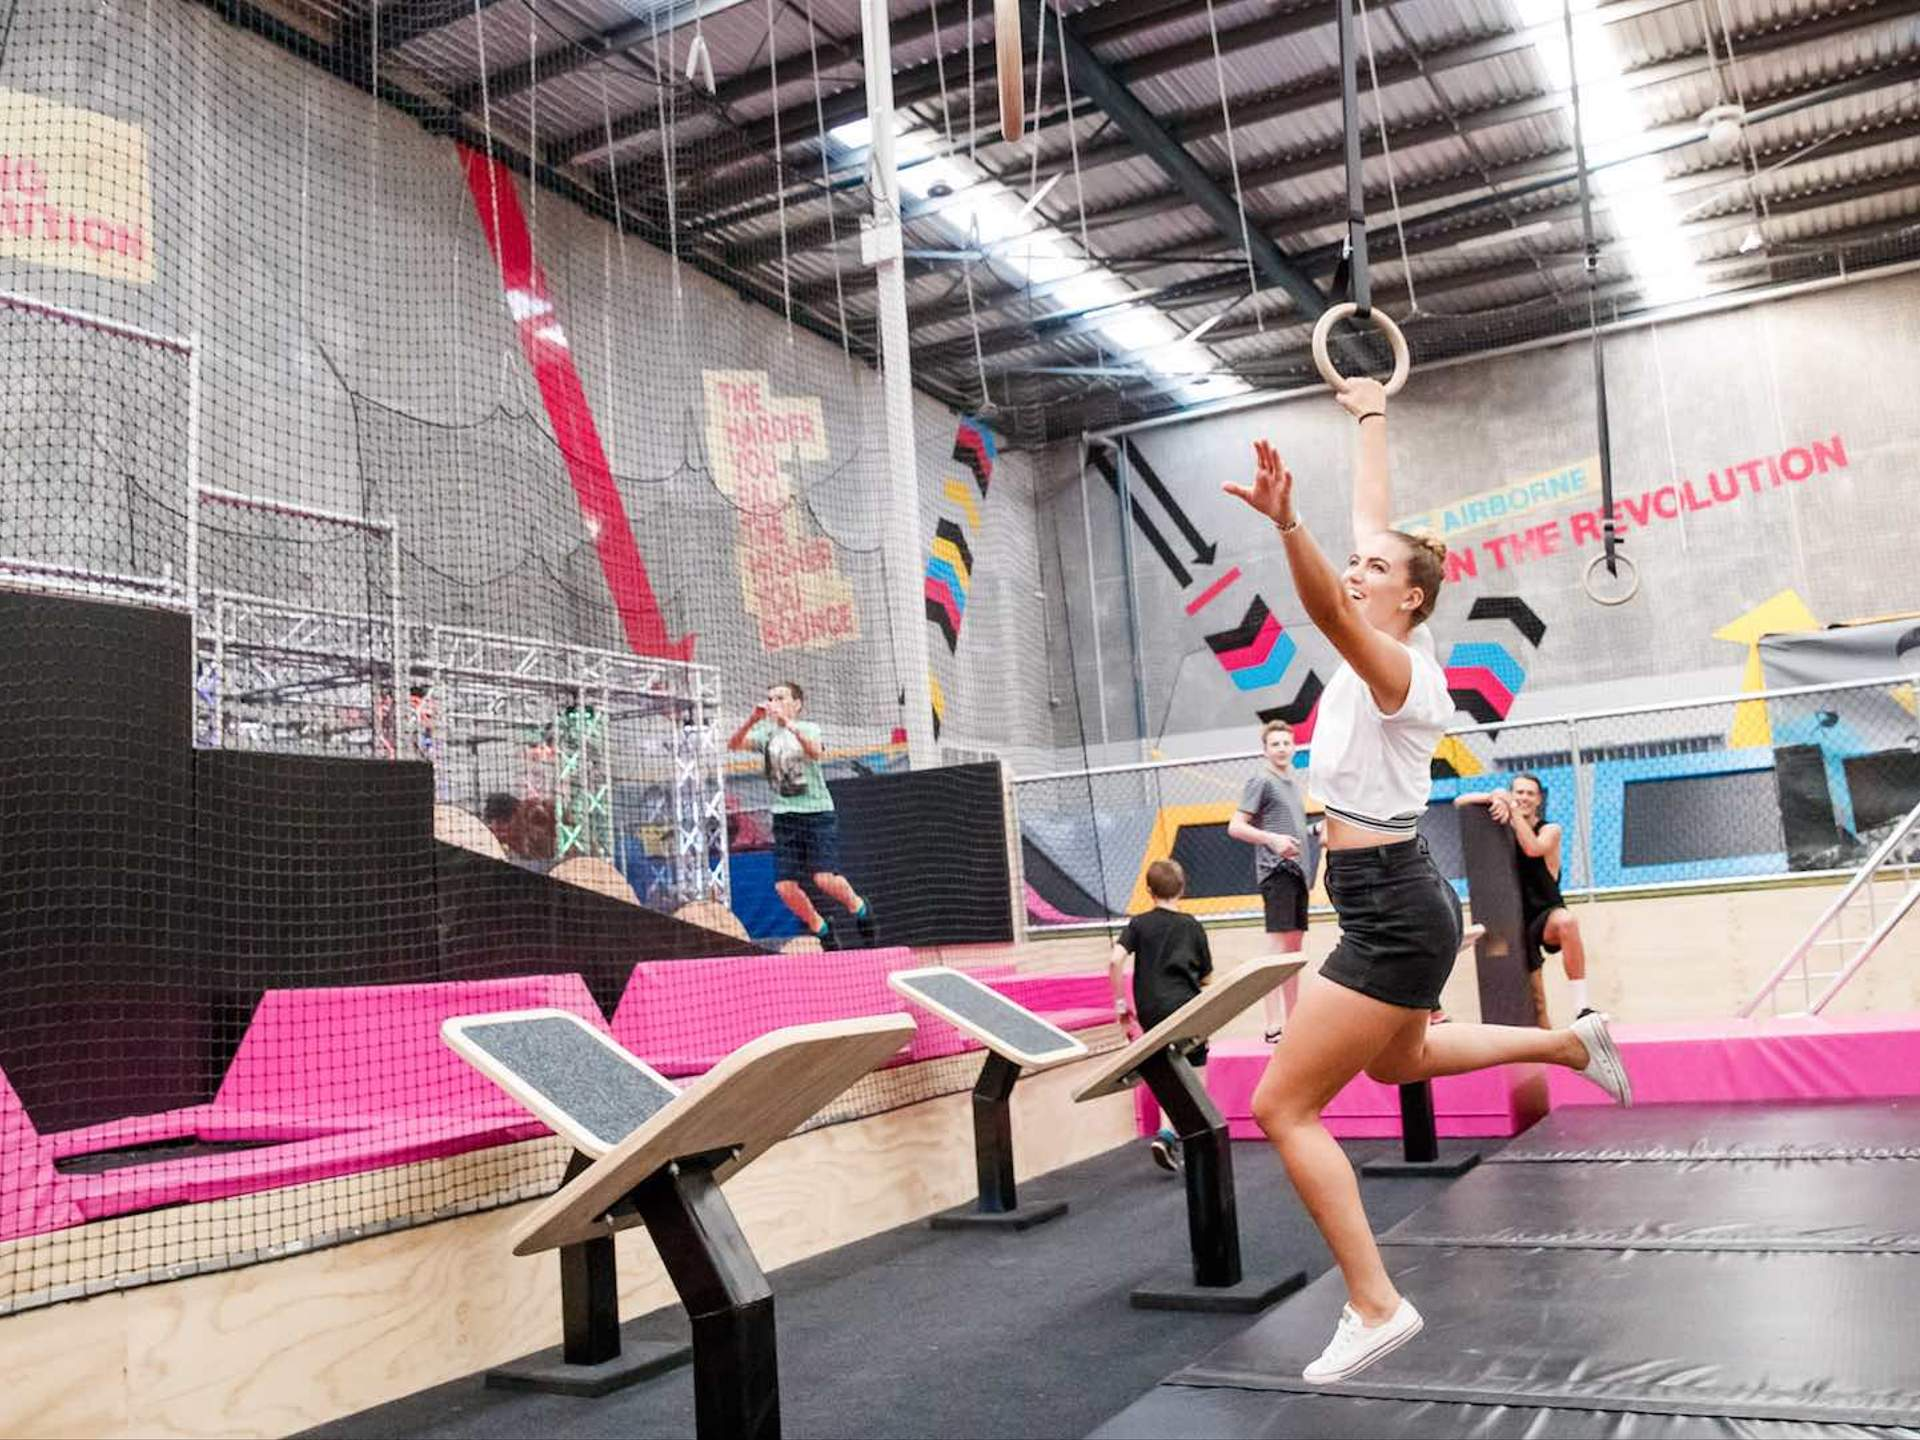 Buy Trampoline Brisbane A Jumping Free For All At Bounce Trampoline Park Concrete